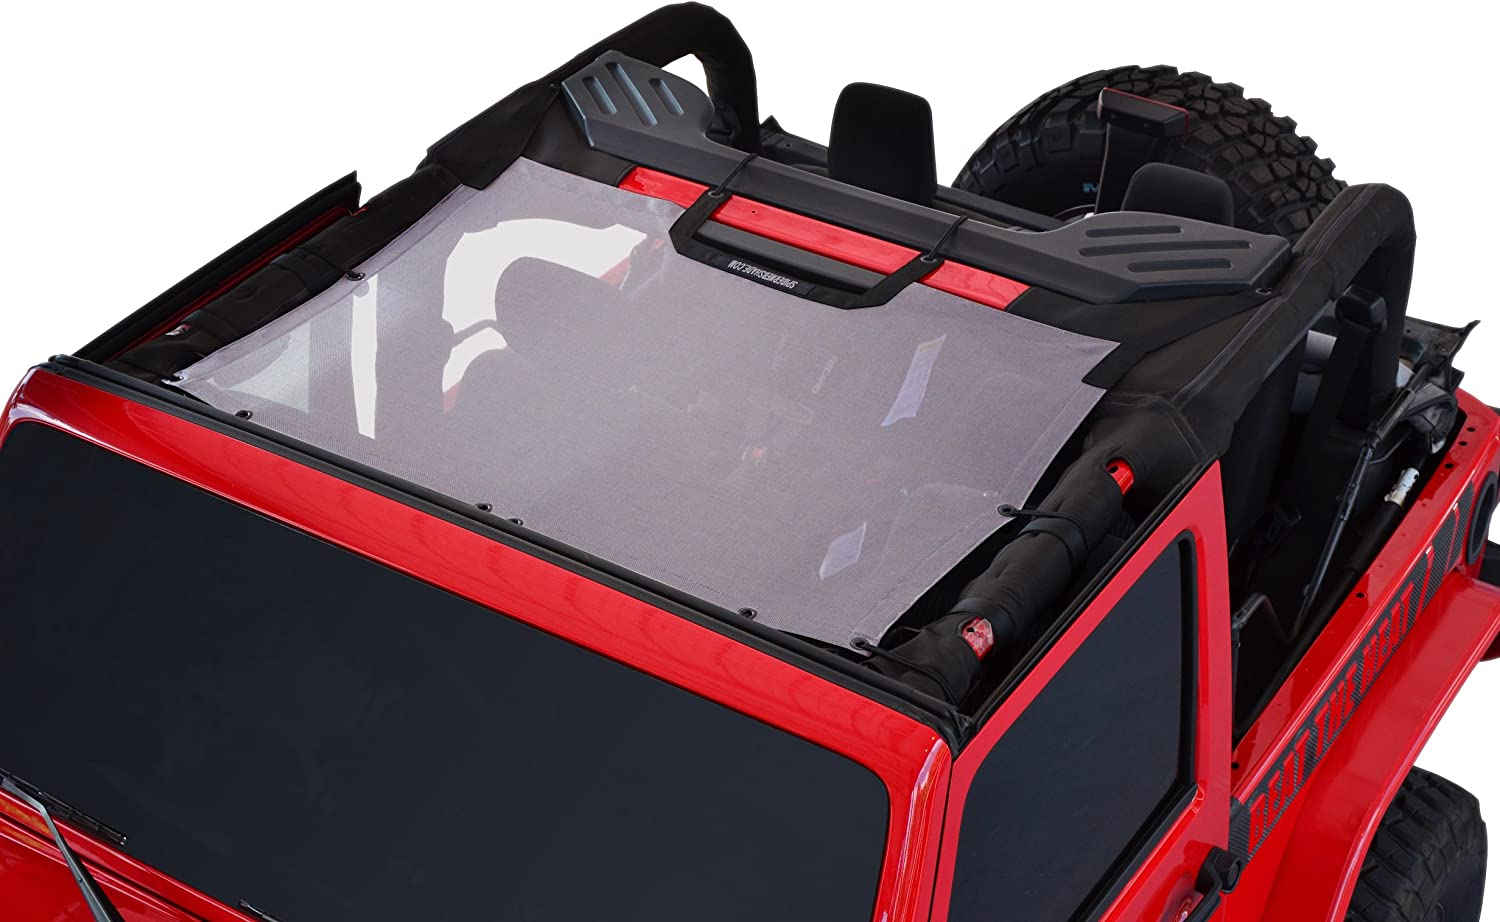 SPIDERWEBSHADE Jeep Wrangler JKini Mesh Shade Top Sunshade UV Protection Accessory USA Made with 5 Year Warranty for Your JK 2-Door and JKU 4-Door in Purple 2007-2018